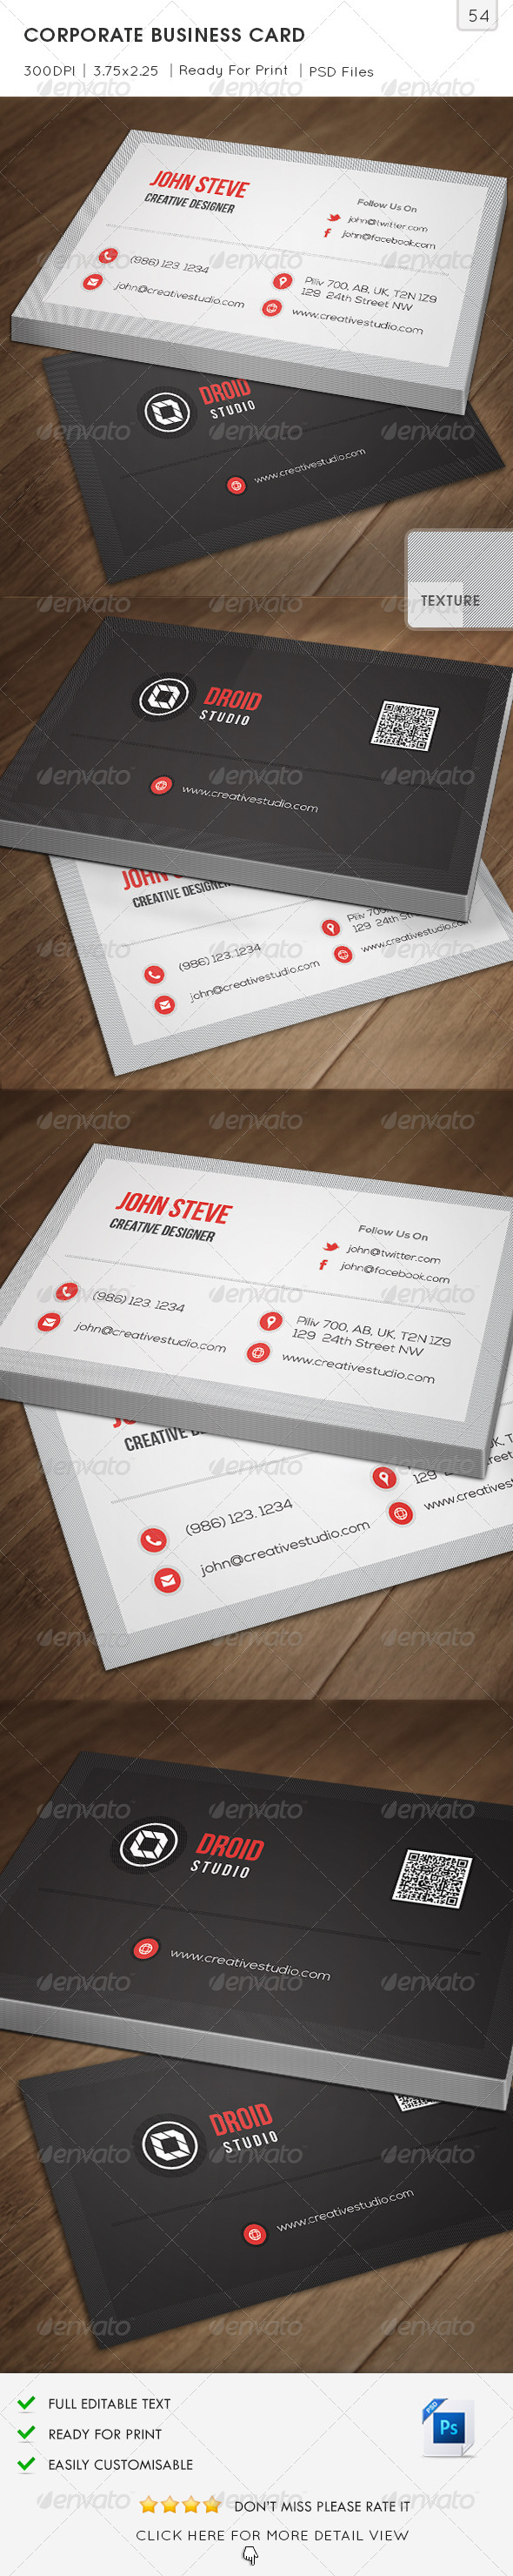 GraphicRiver Corporate Business Card v54 6963319